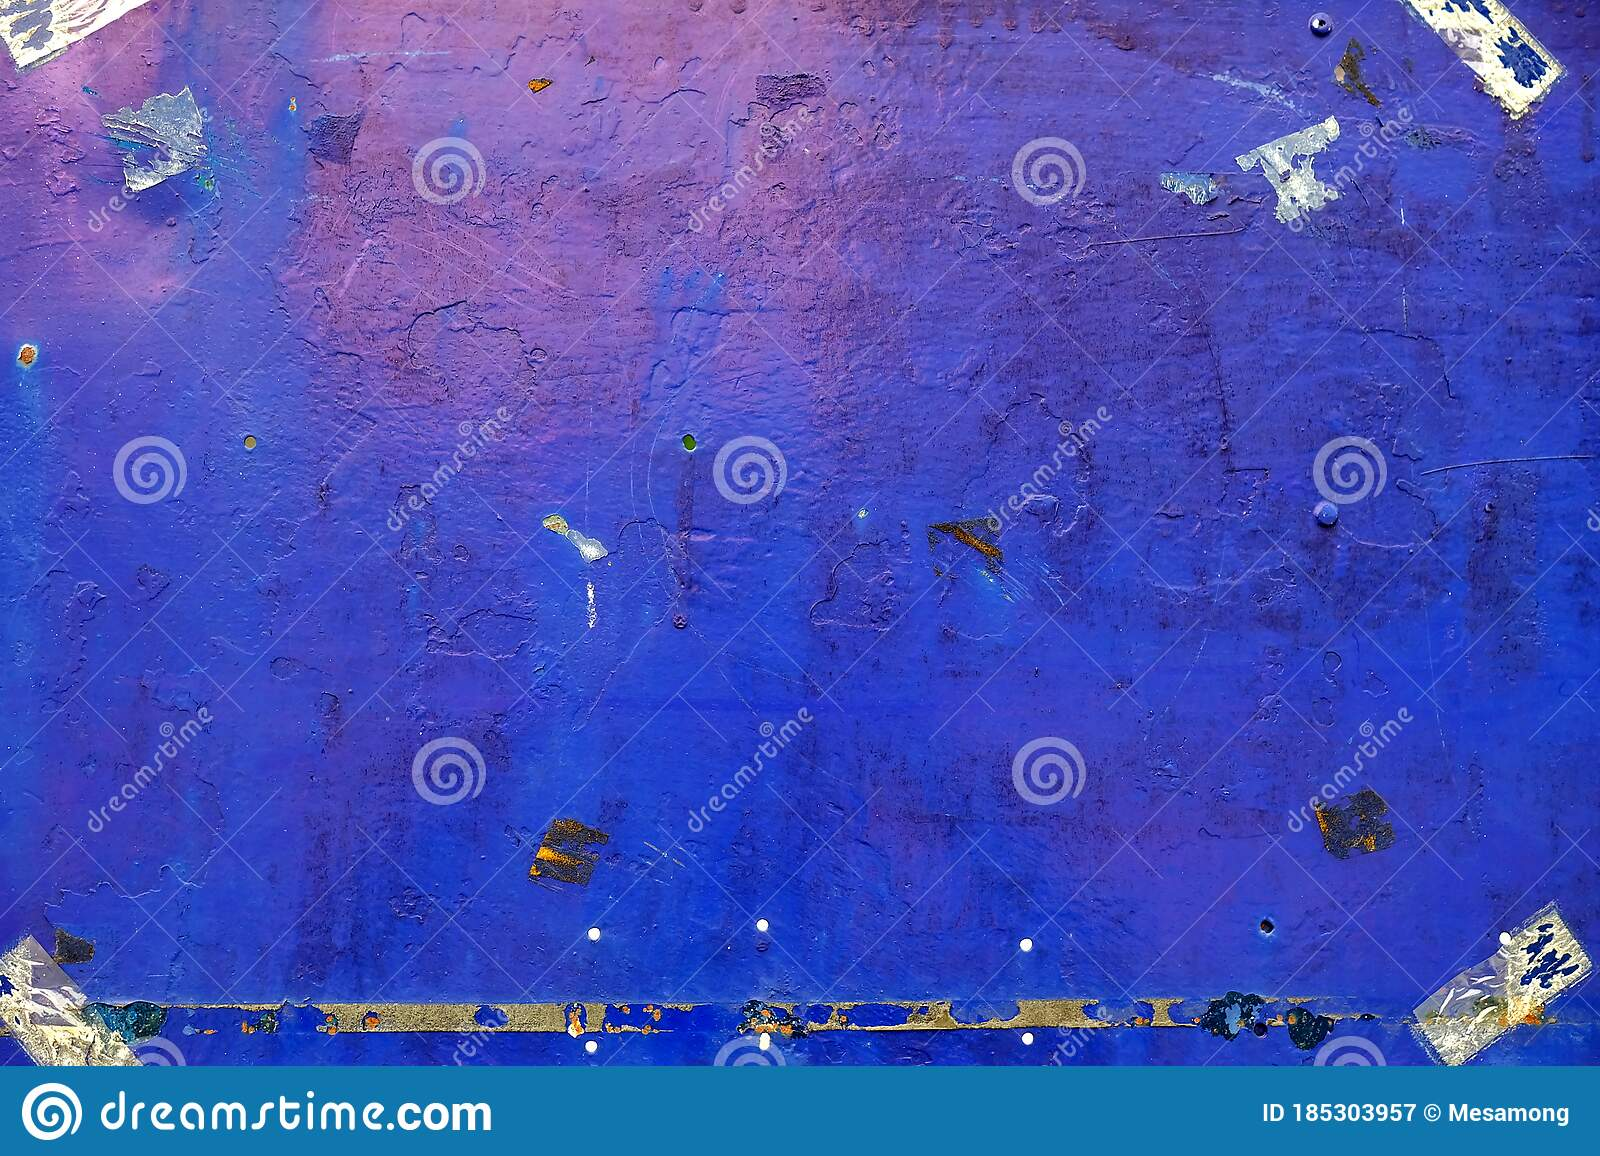 Rusty Old Blue Painting On Metal Plate Background Suitable For Wallpaper Backdrop Mockup And Product Presentation Stock Image Image Of Industry Cracked 185303957